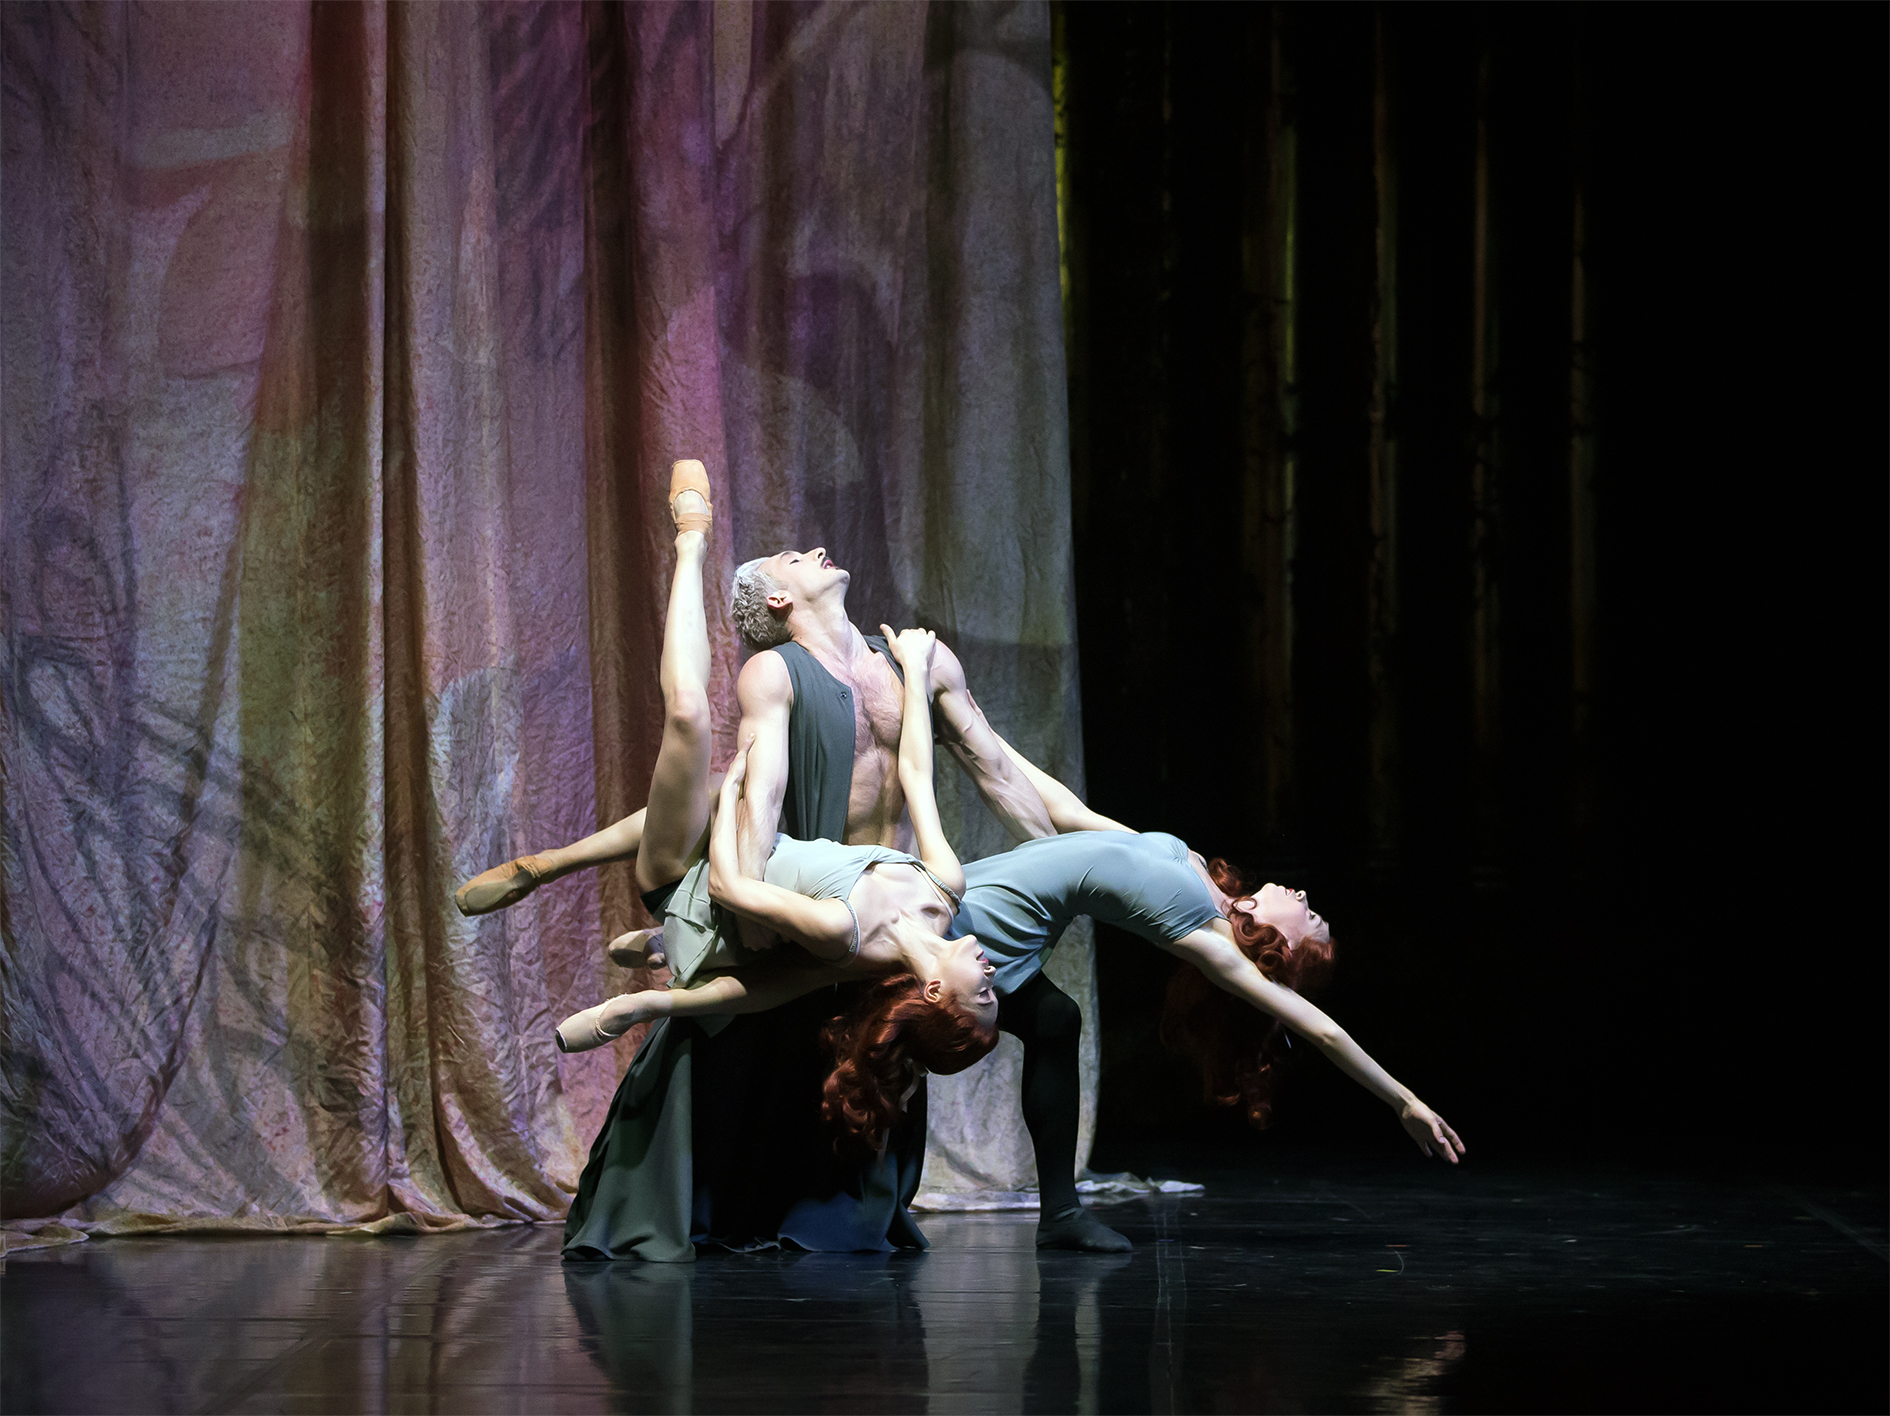 Northern Ballet's Casanova. Giuliano Contadini as Casanova with Minju Kang and Abigail Prudames as the Savorgnan Sisters. Photo by Emma Kauldhar.